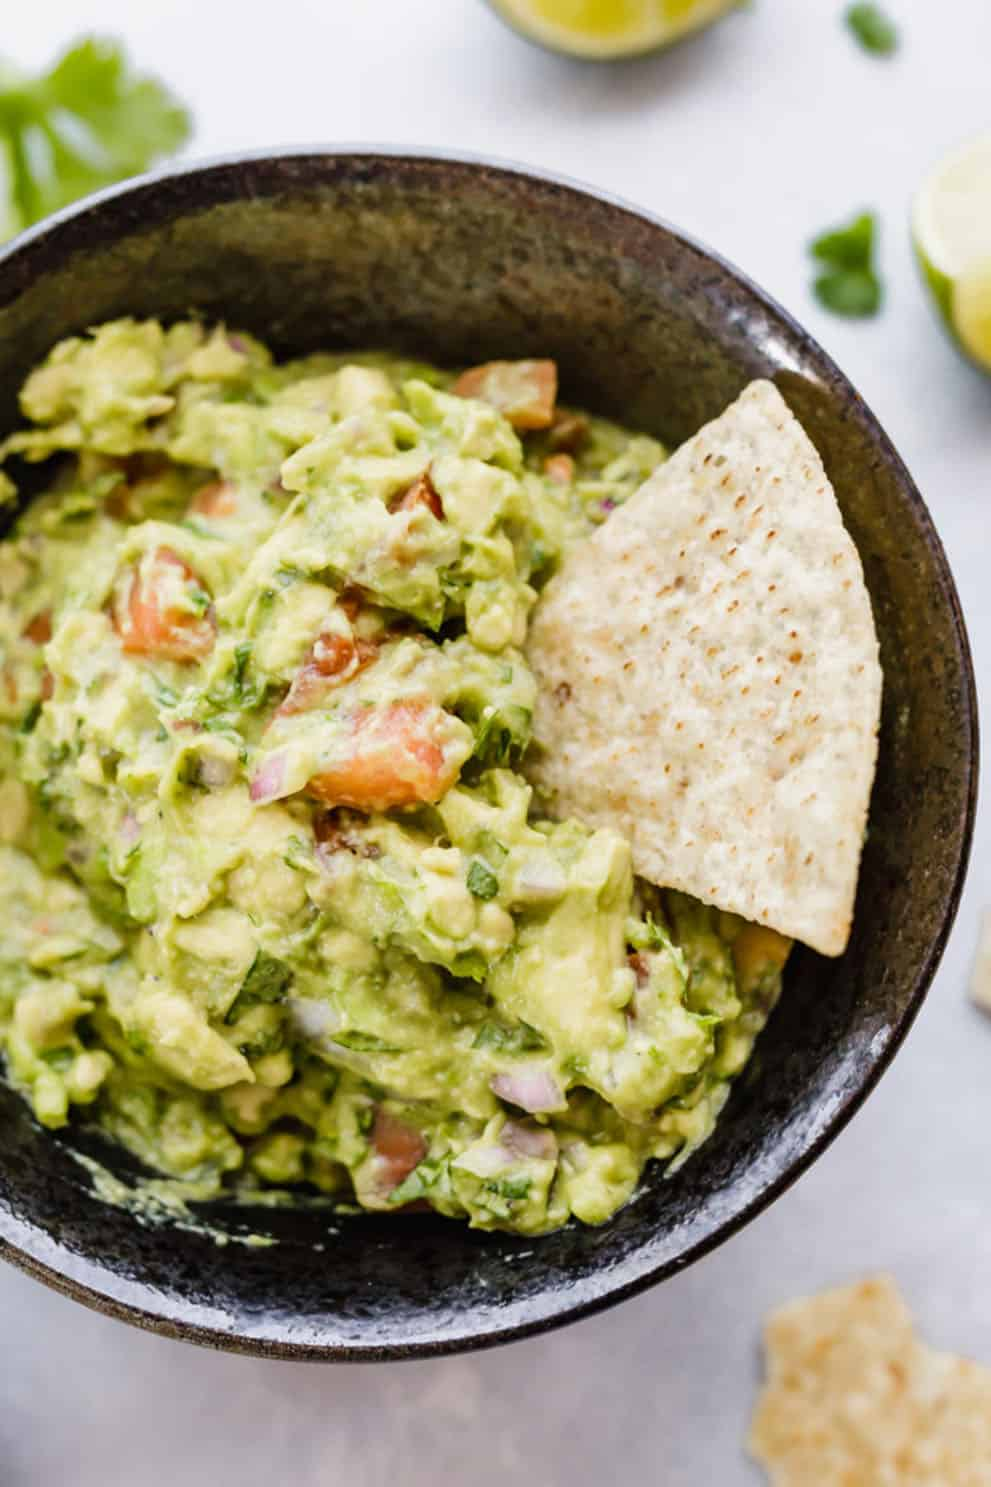 BEST GUACAMOLE RECIPE by Salt & Baker: these delicious and easy veganappetizers are what you'll need for your Christmas feast. The most incredible, healthy and inexpensive party food perfect to please a crowd!